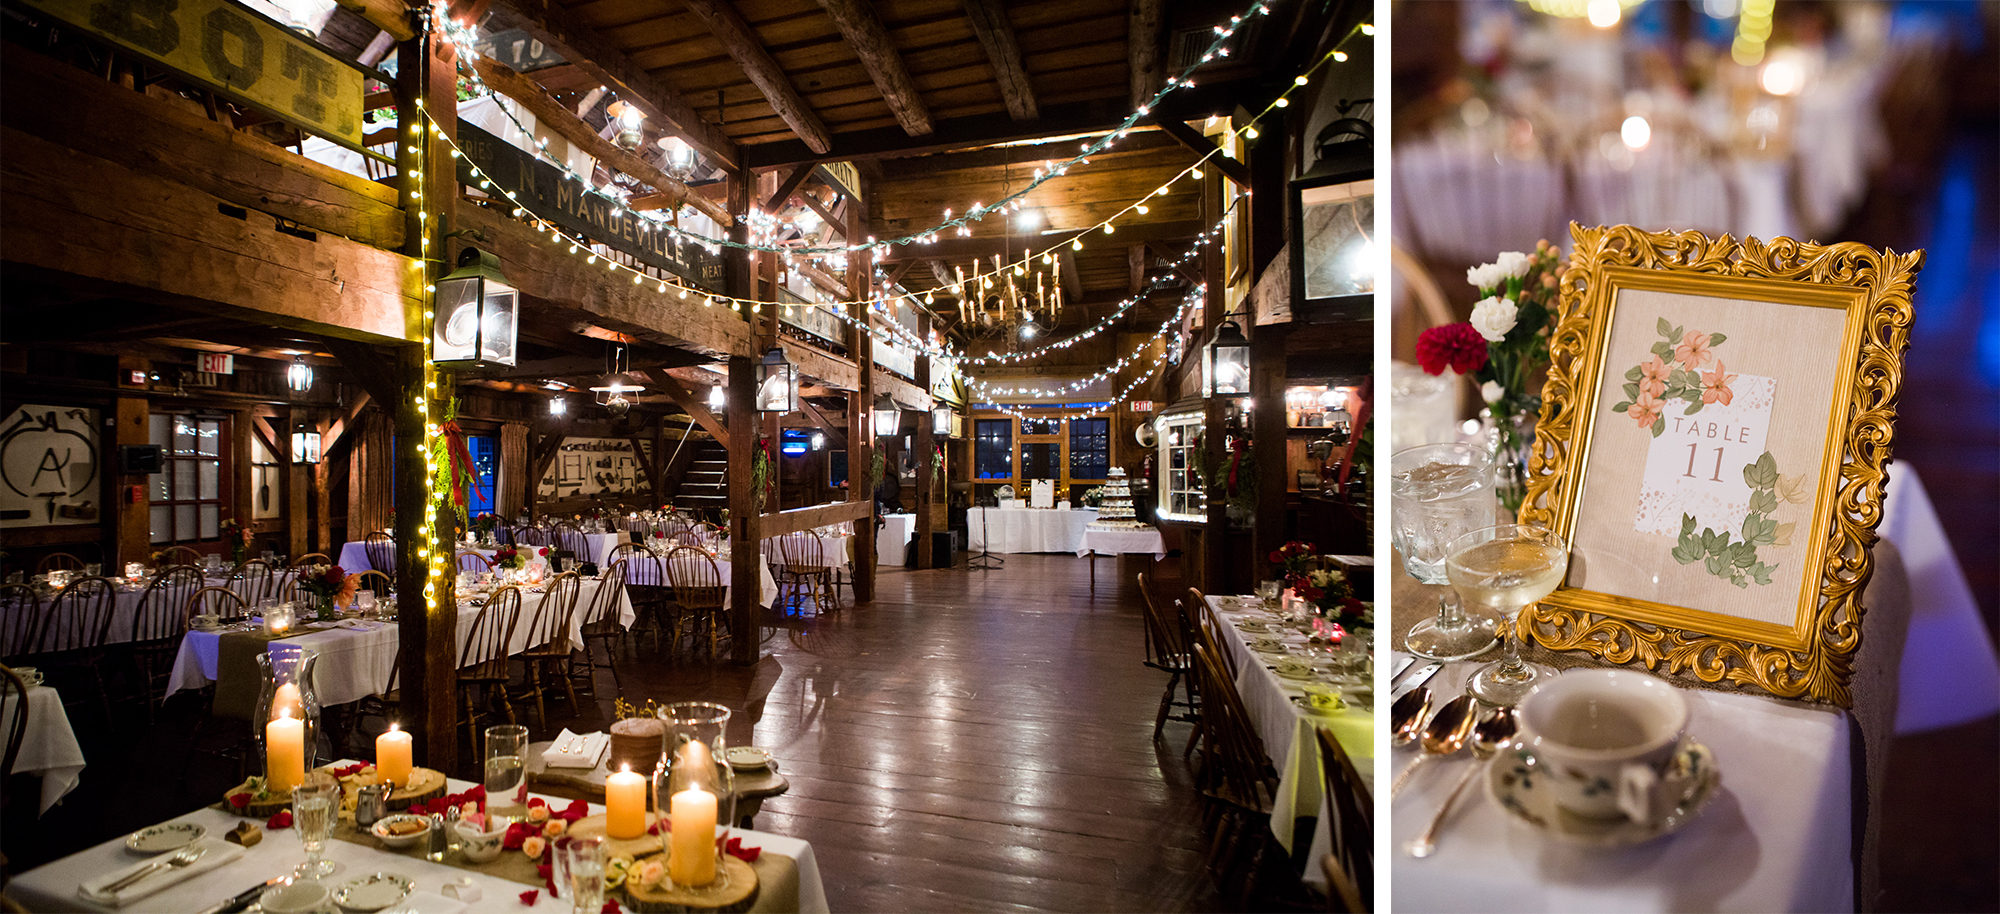 Rustic Barn Reception Decor Wedding Massachusetts Zsuzsi Pal Photography Destination